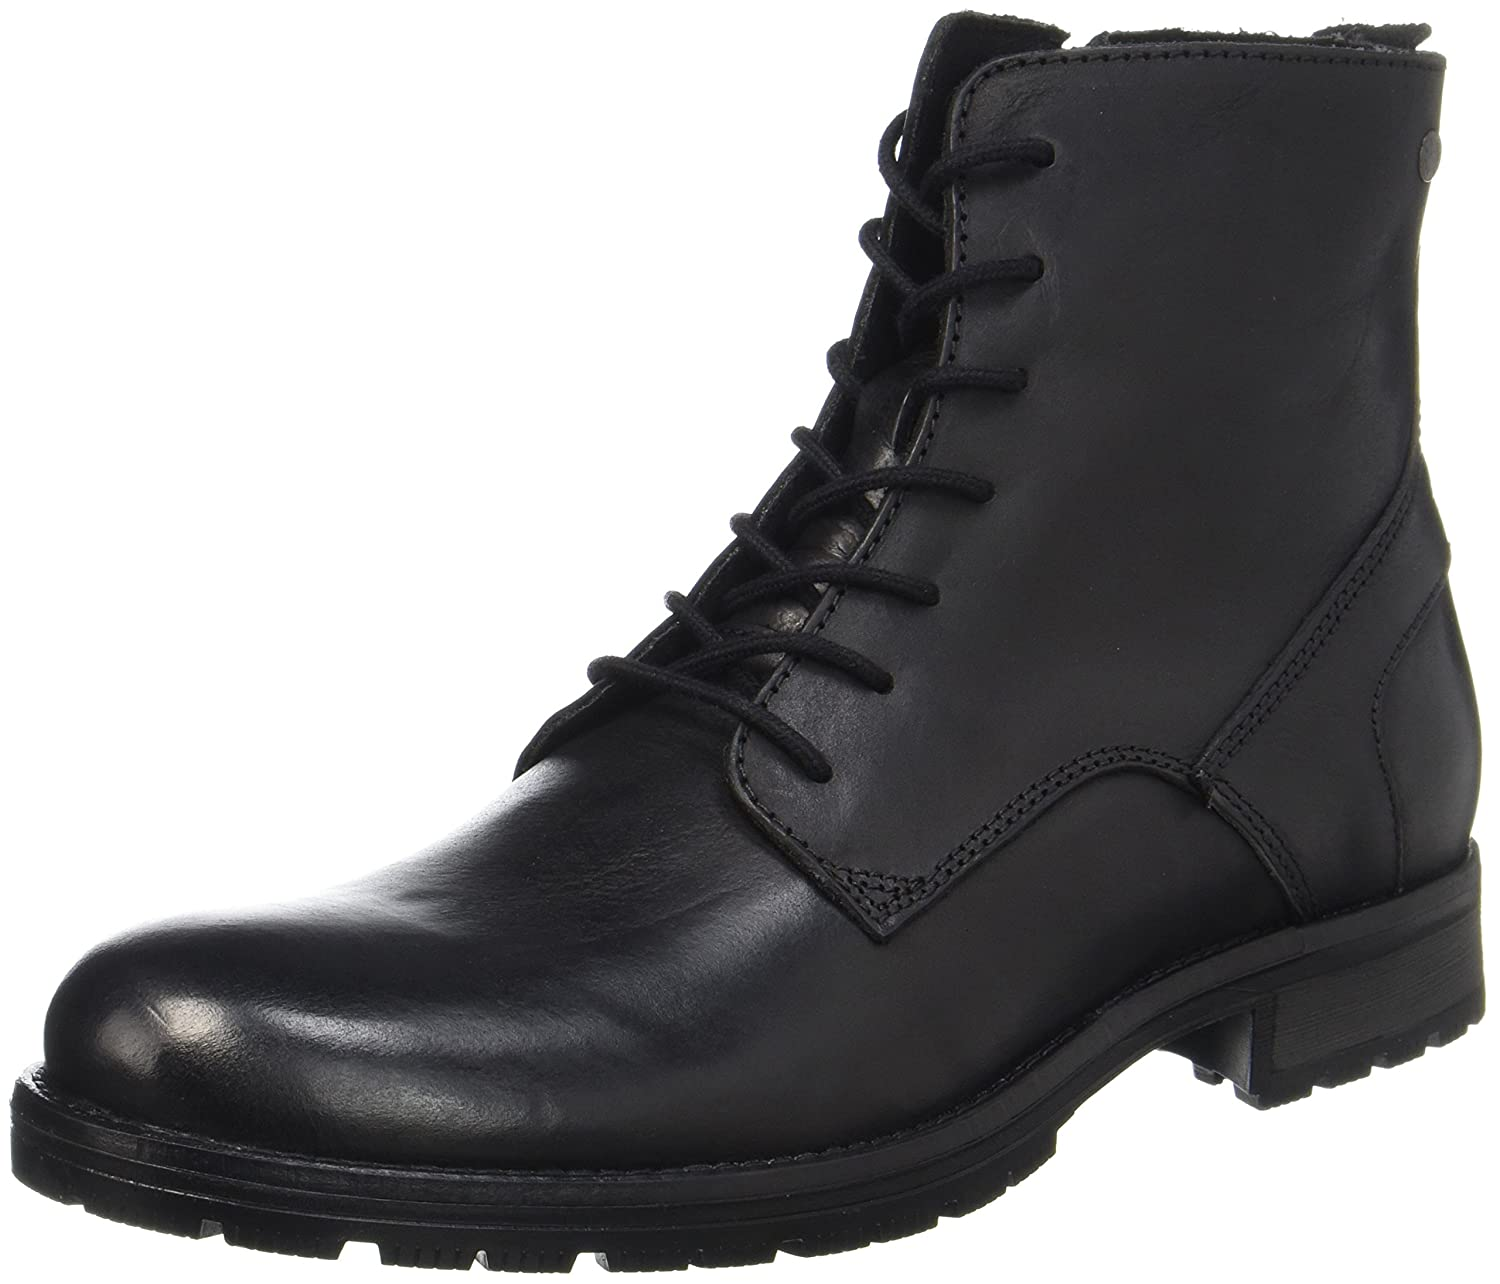 TALLA 44 EU. Jack & Jones Jfworca Leather Black, Botas Clasicas para Hombre